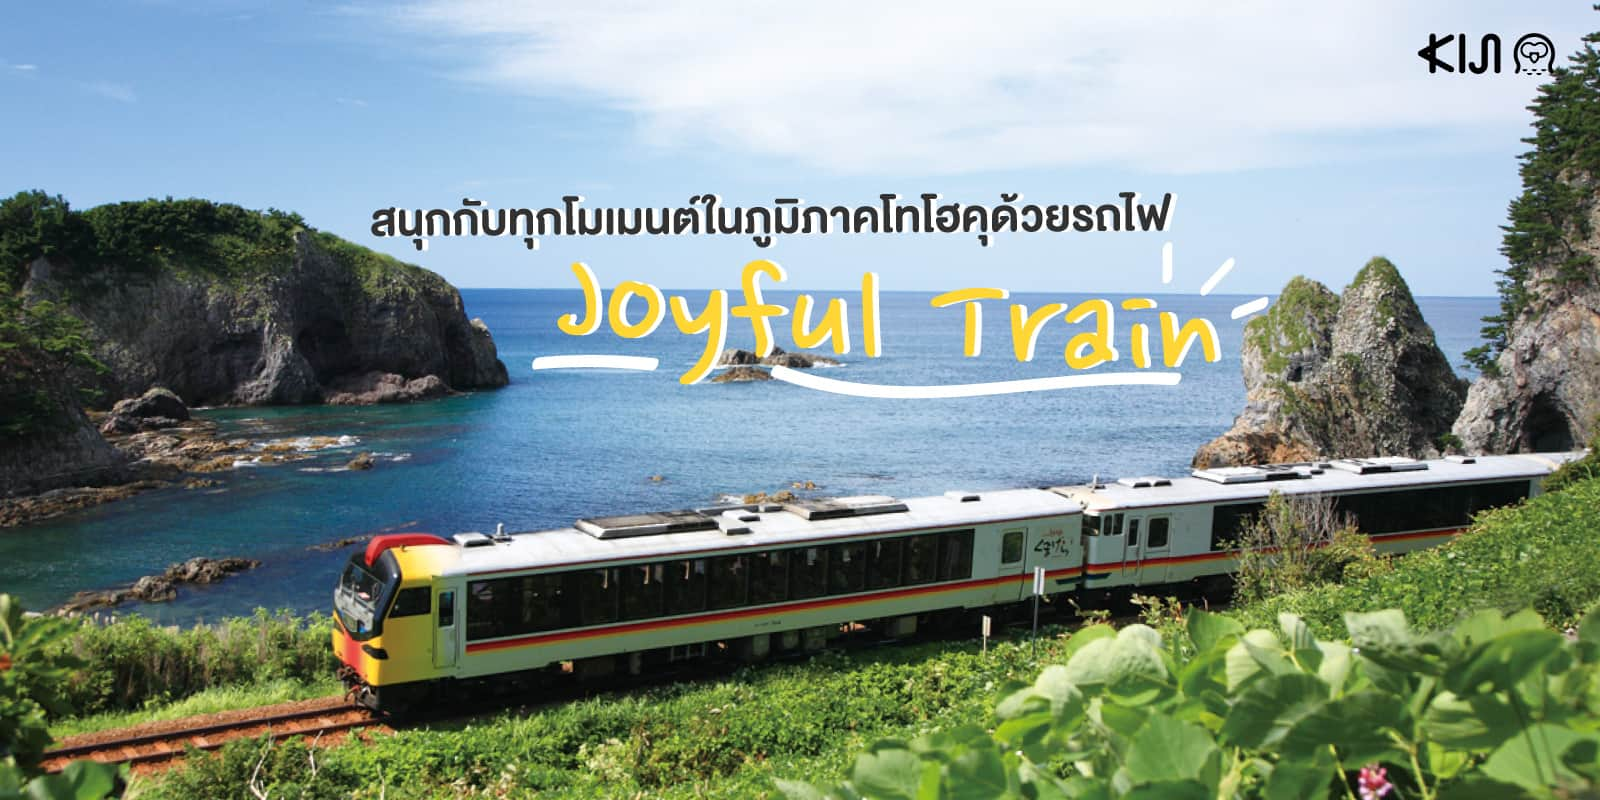 Joyful Train